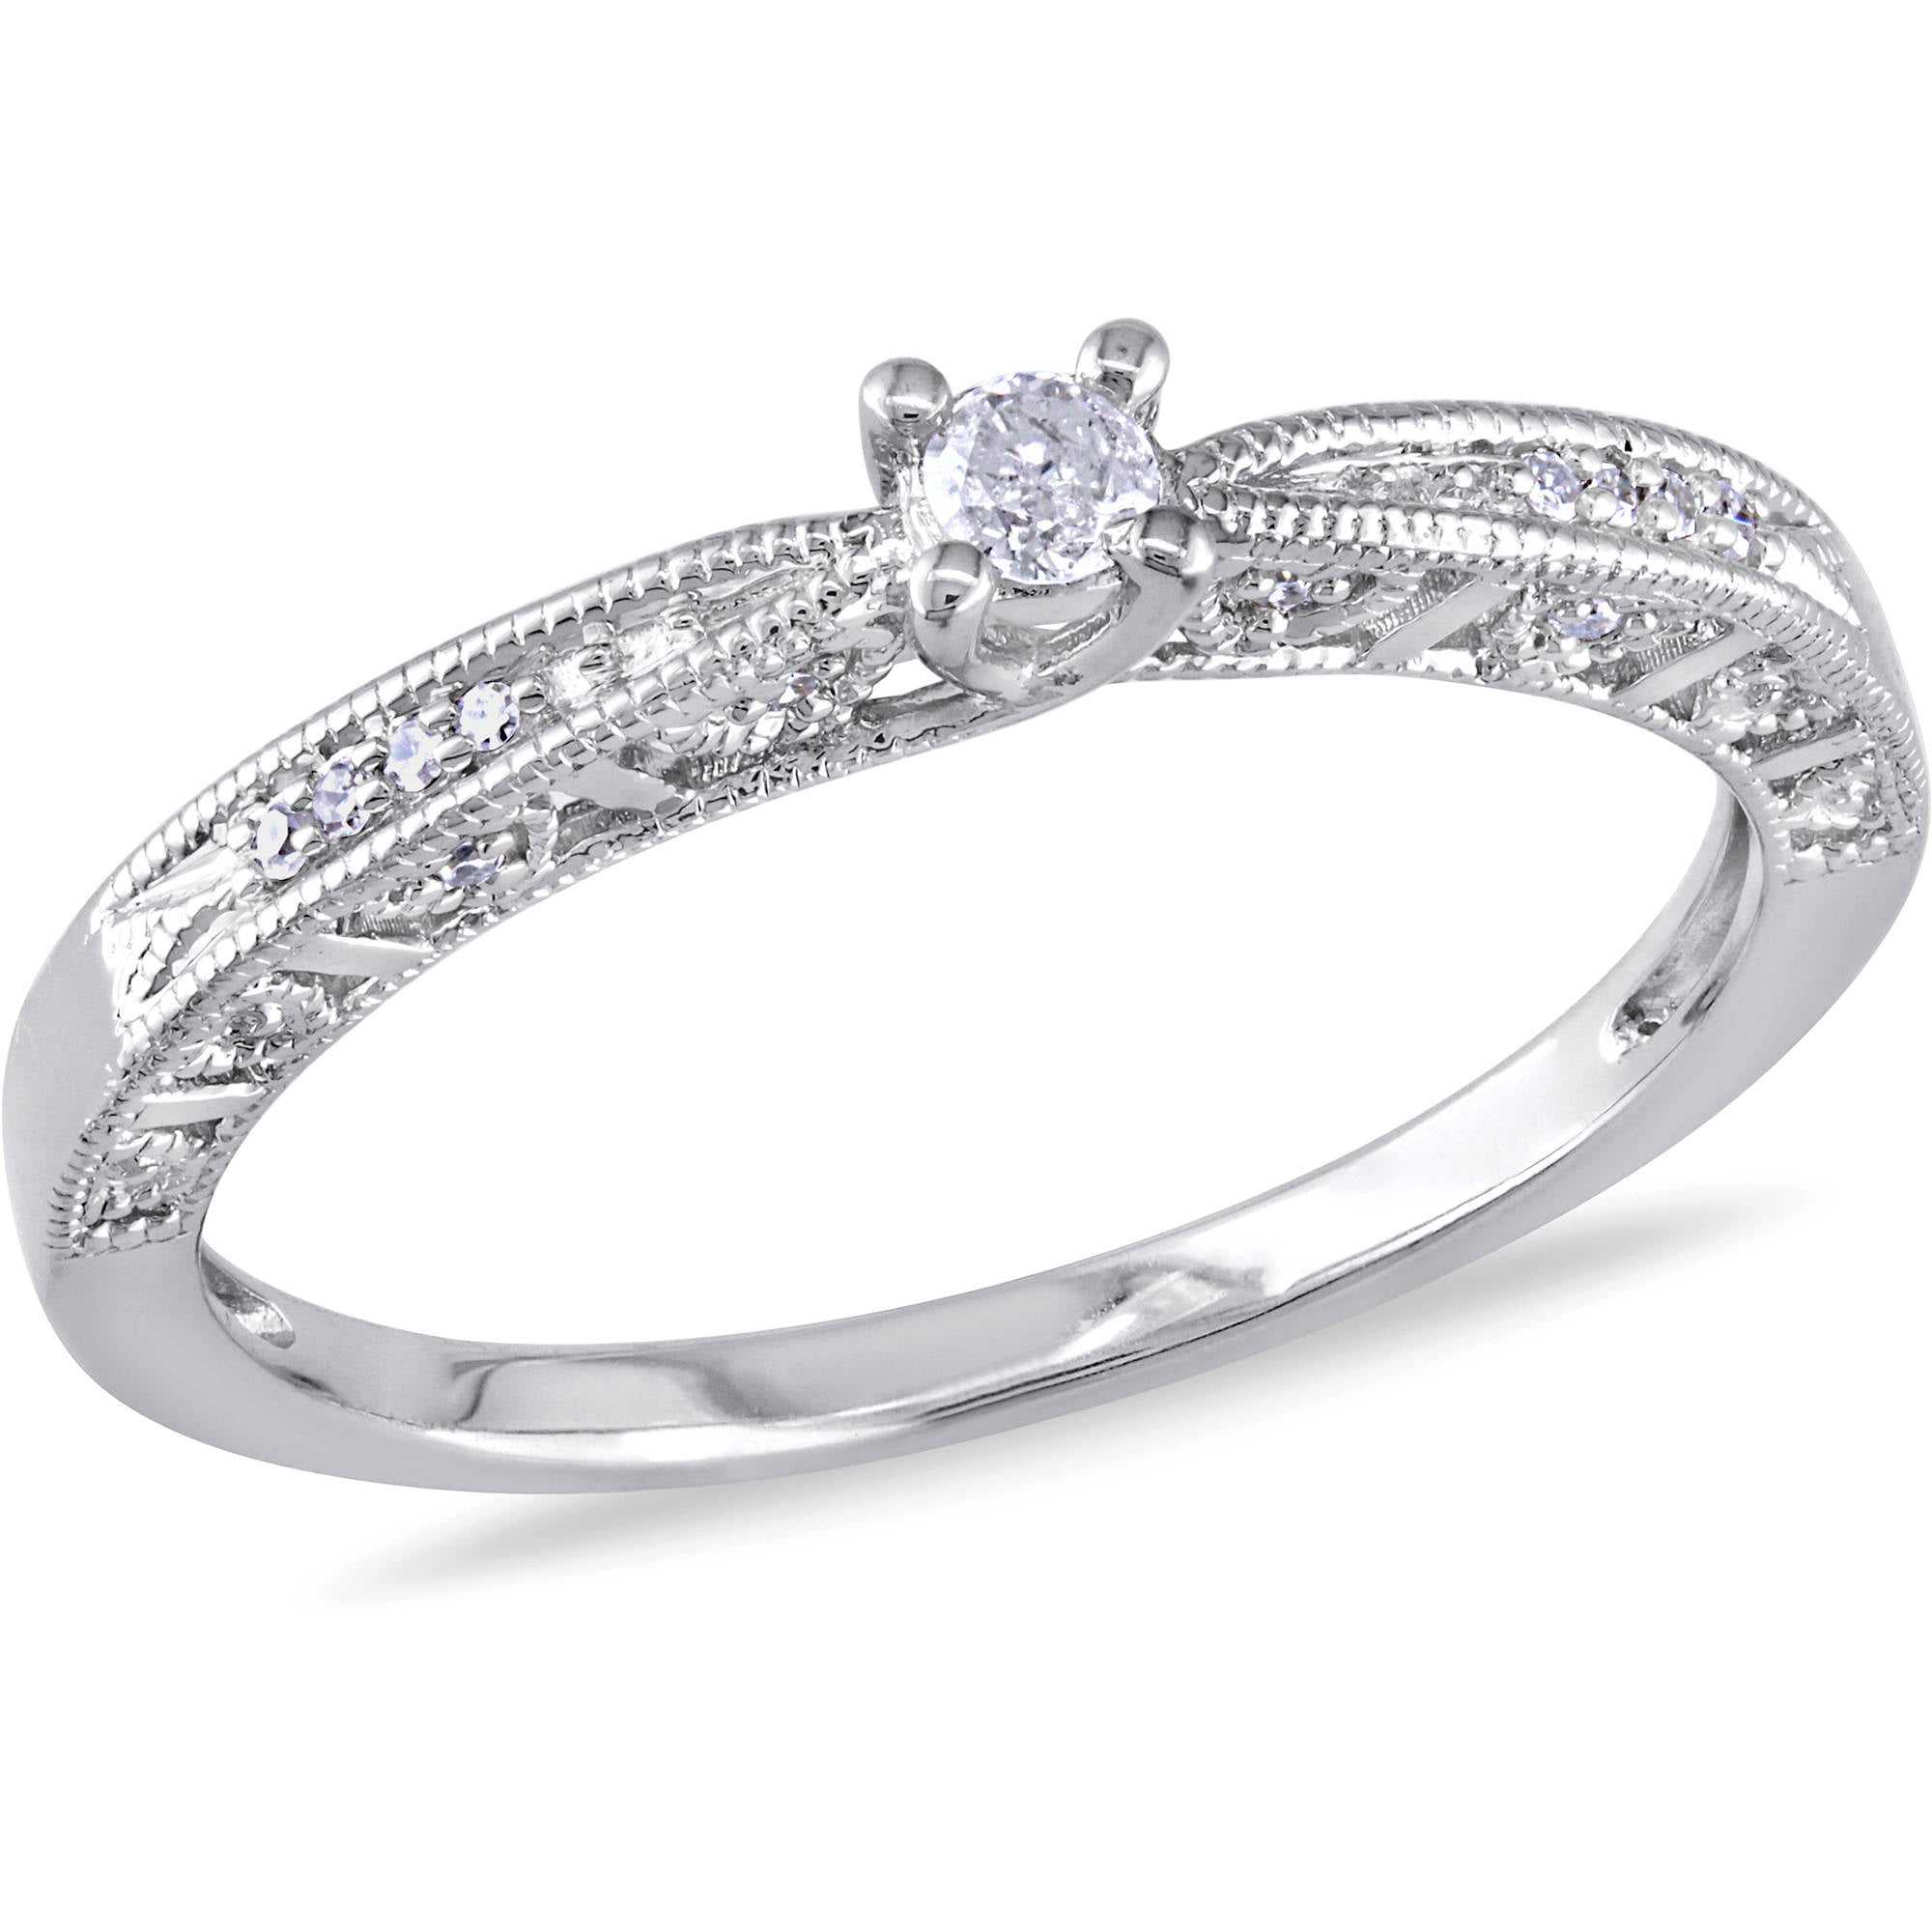 tanishq promise rings wedding diamond ring engagement for pin pinterest dress